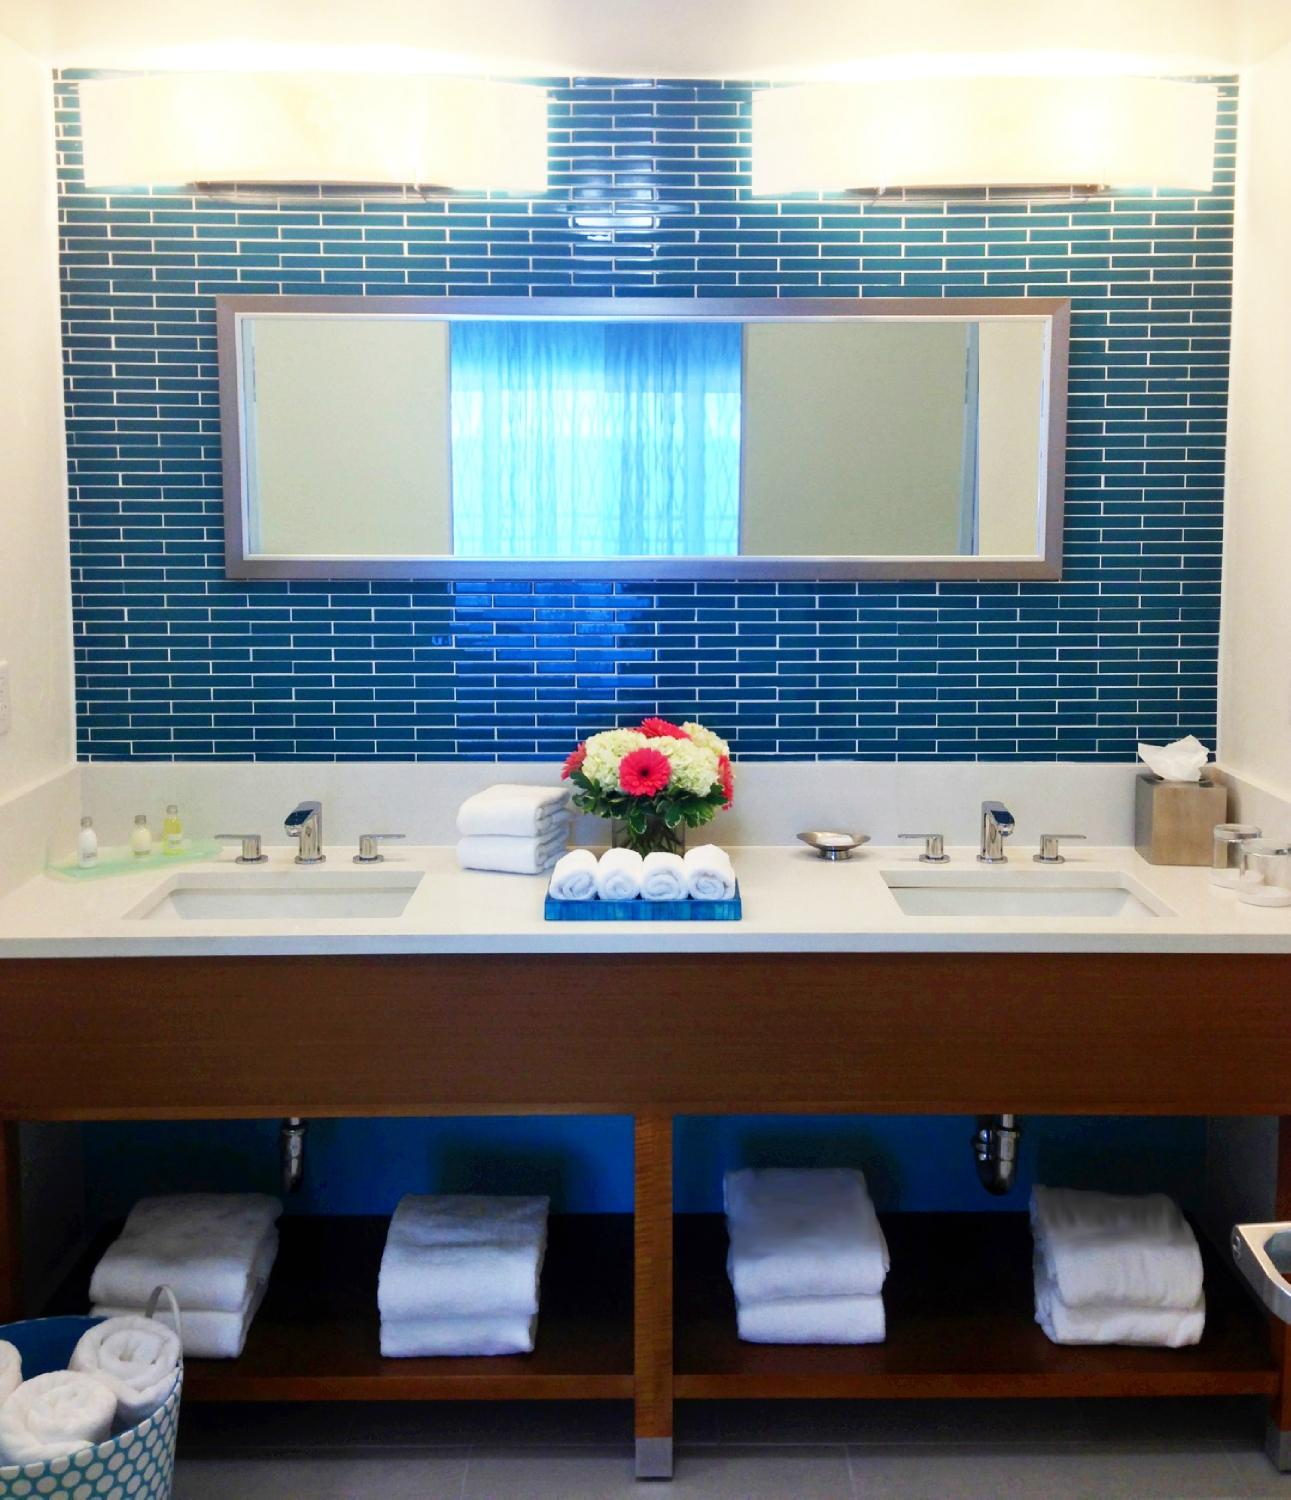 Ocean Place Resort & Spa - Long Branch Day Rooms | HotelsByDay